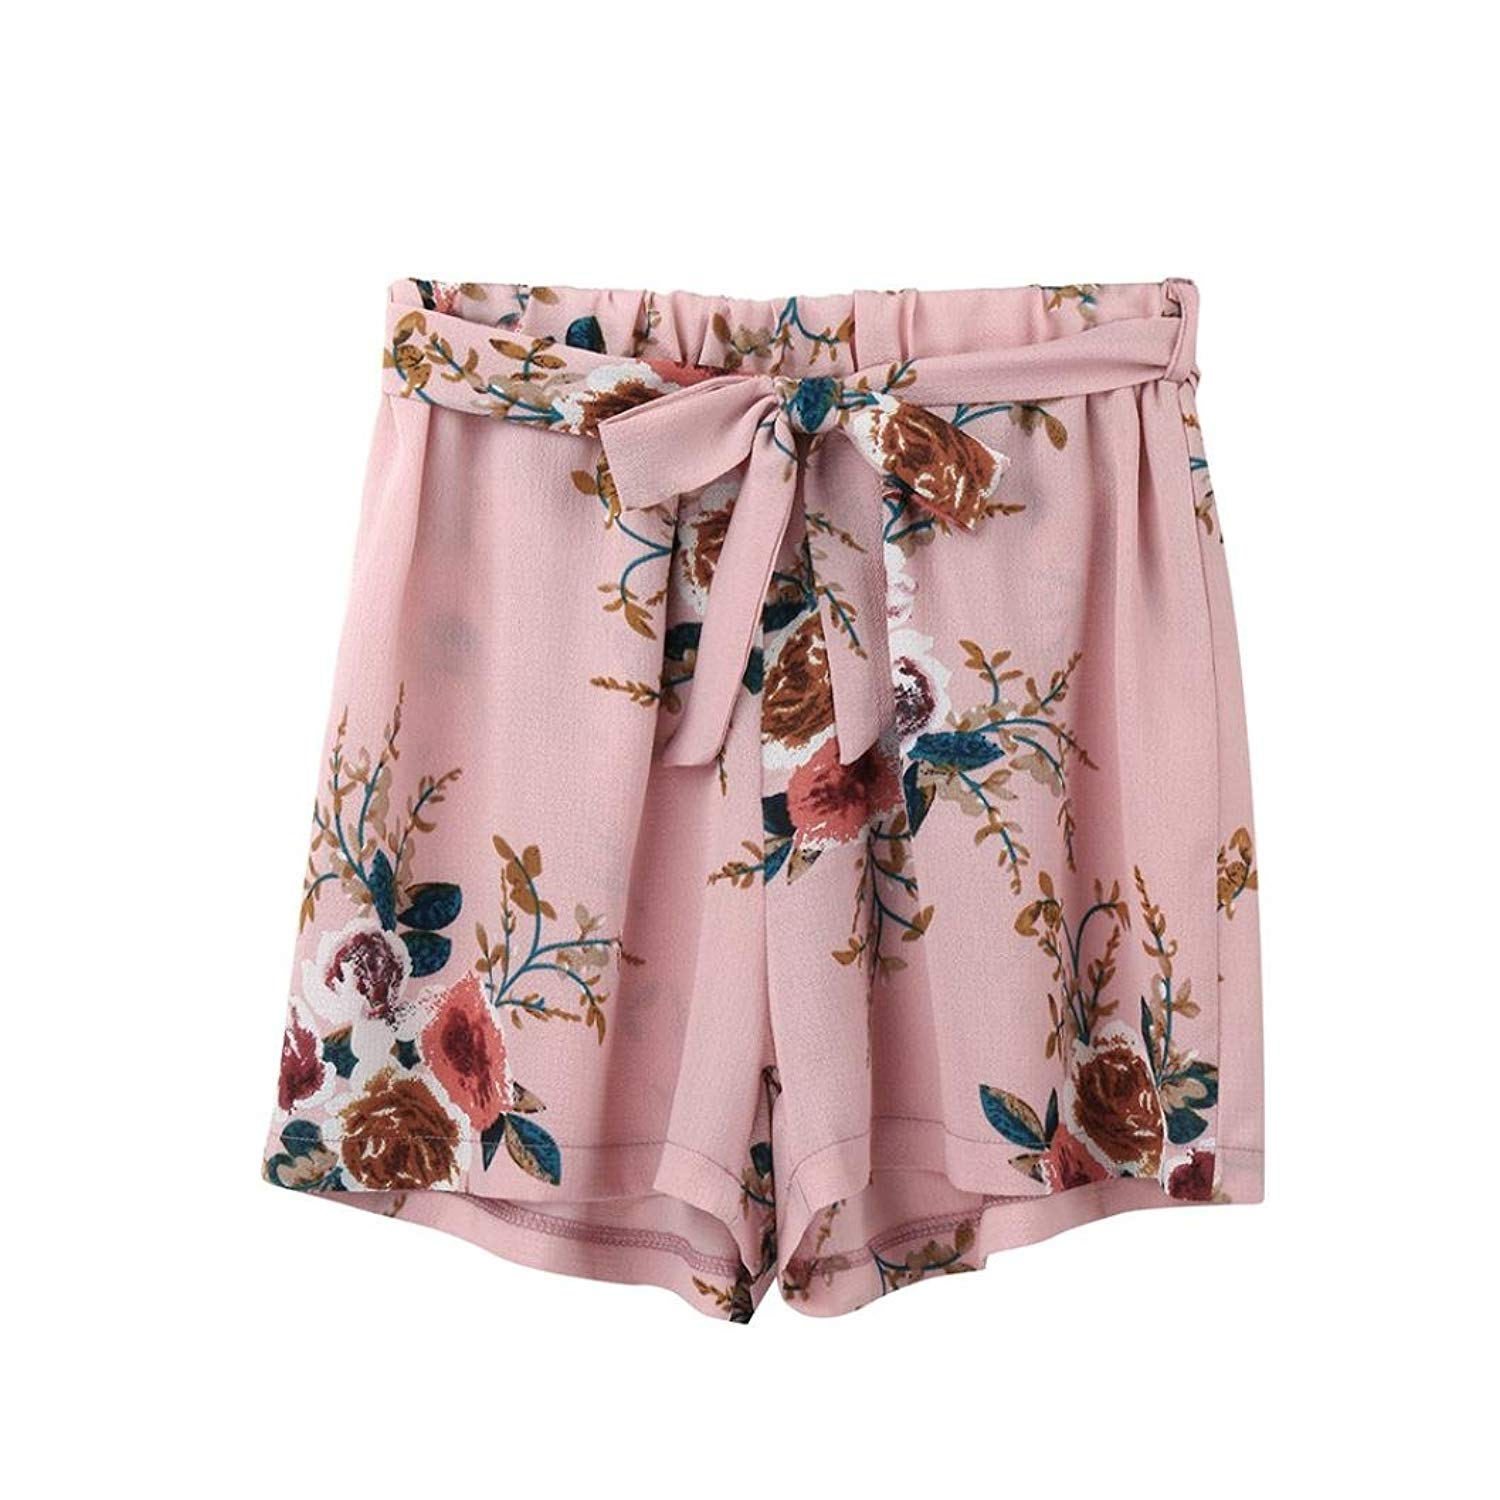 BCDshop Women Casual Teen Girl Summer Shorts Beach Short Trousers Floral Hot Pants